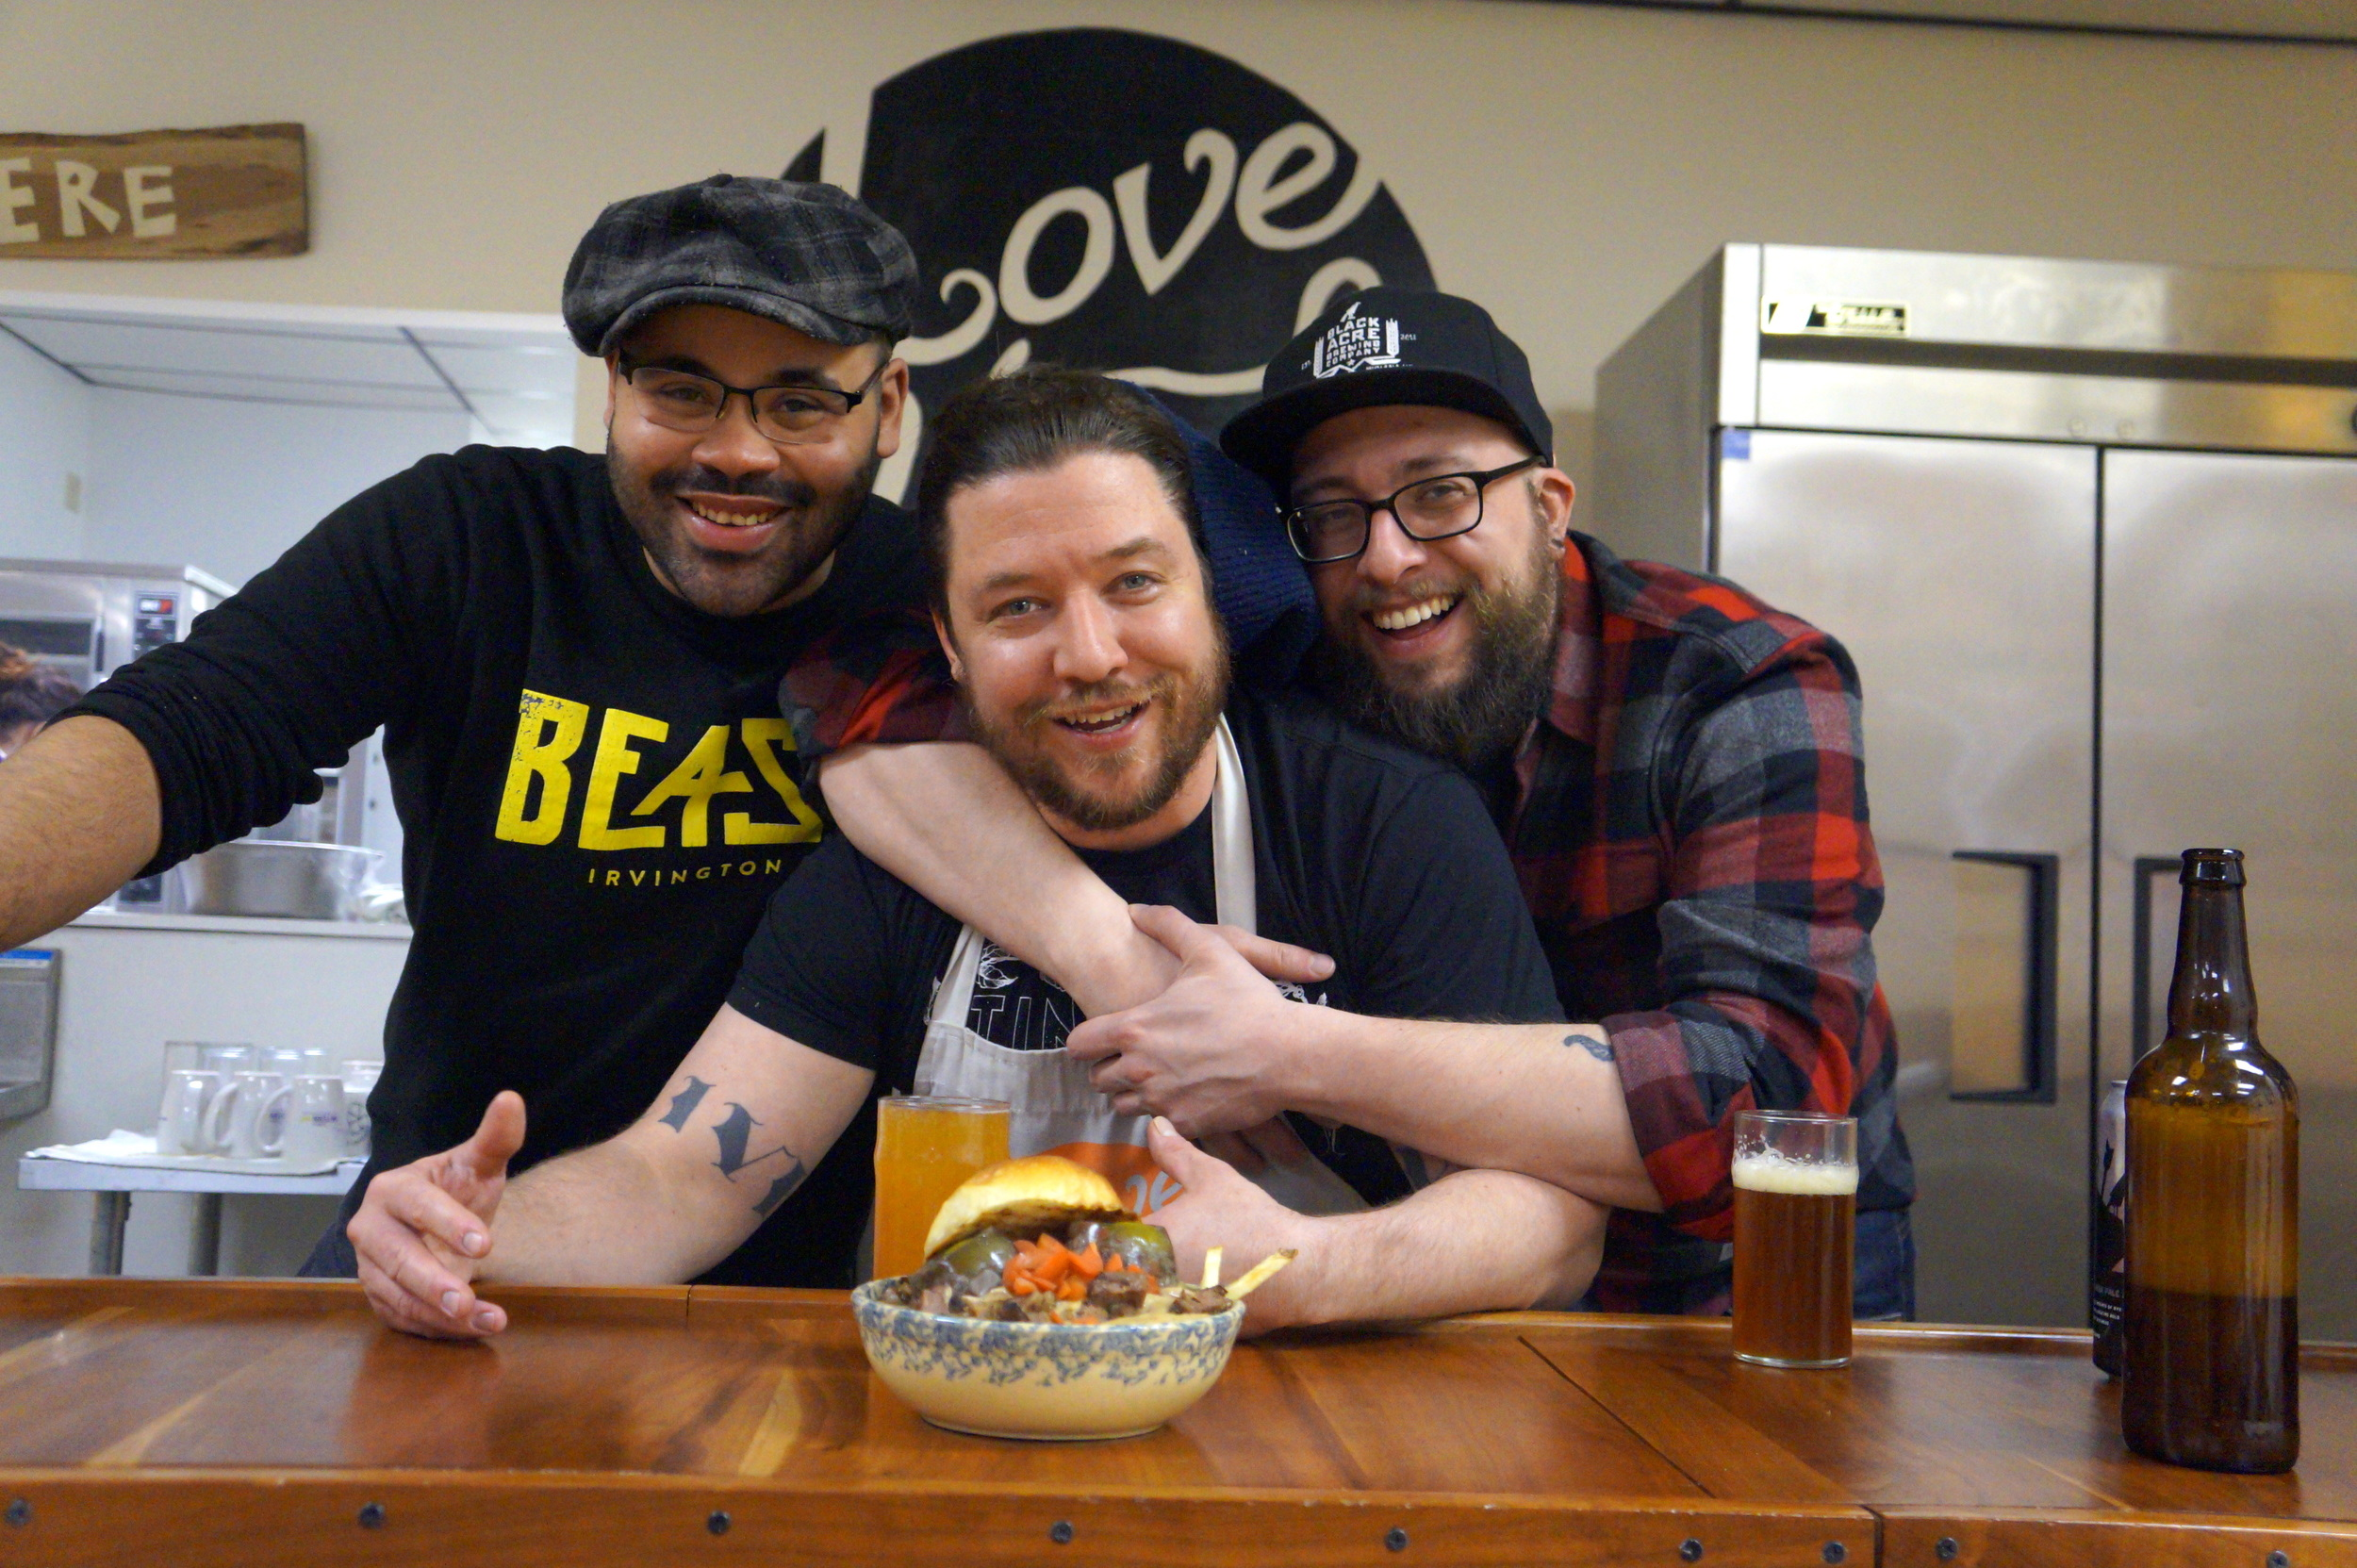 BEAST's Chef Michaels (left) joined by  Love Handle  owner / chef Chris Benedyk (center) and  Black Acre  brewer / chef Steve Ruby (right.)